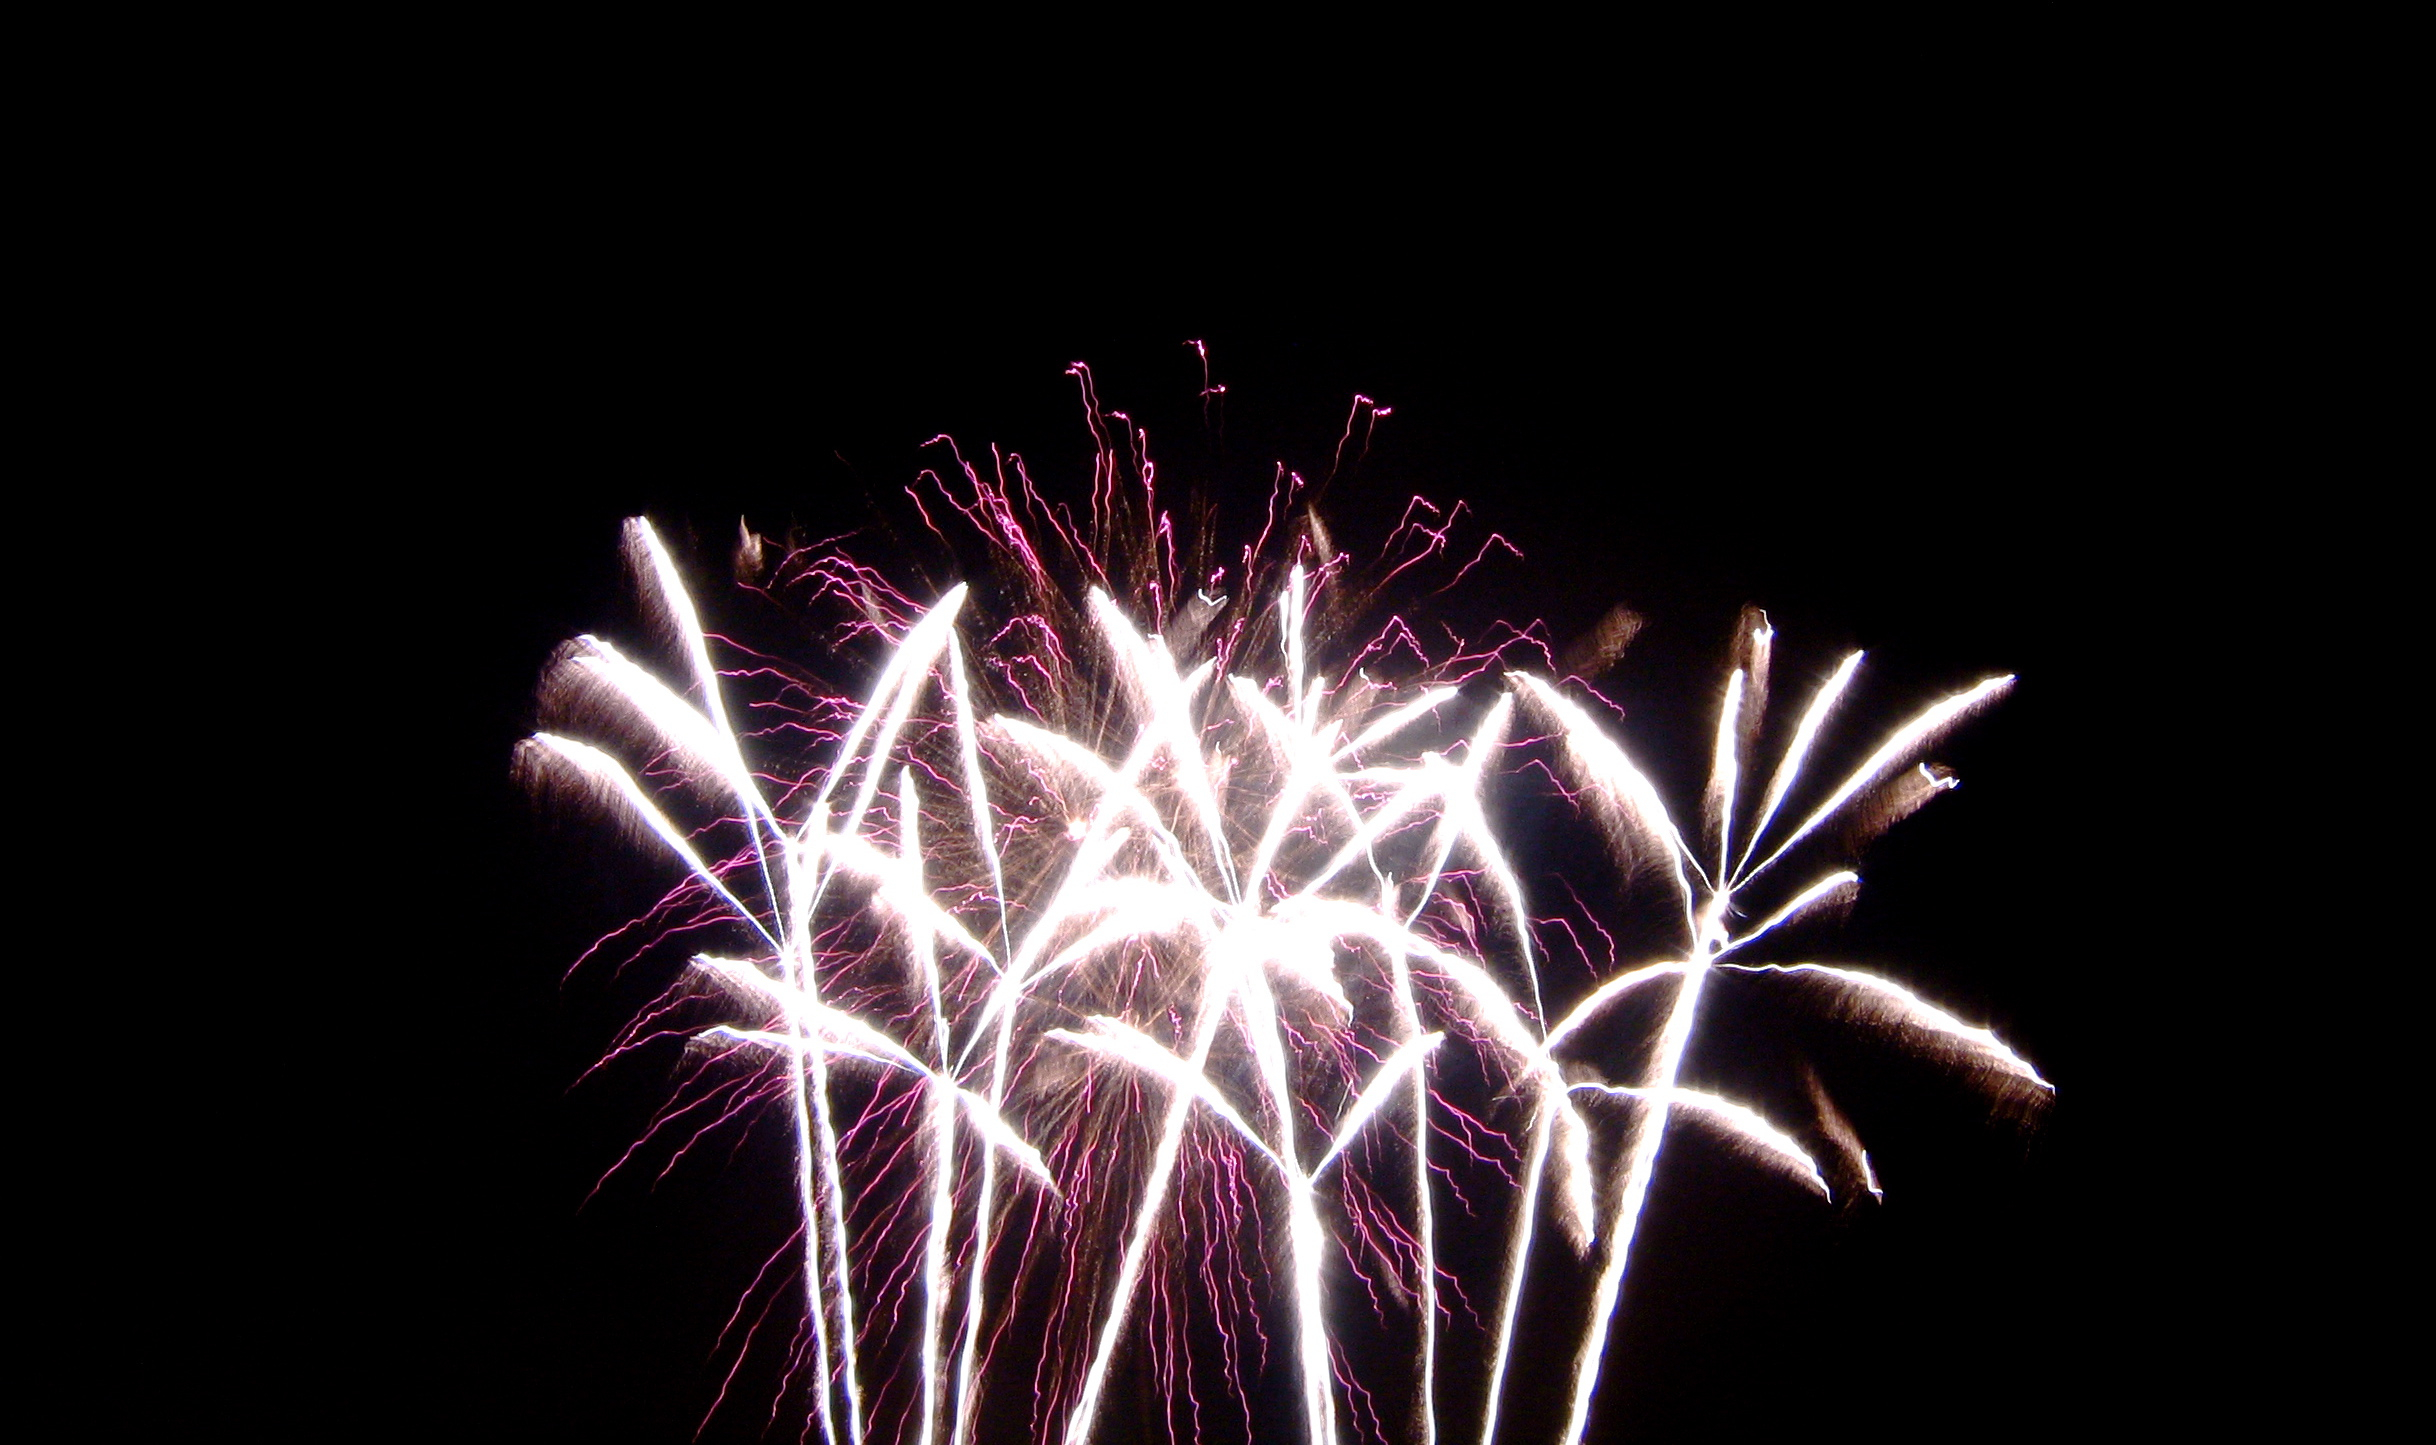 Fire and Light Festival Fireworks london events october